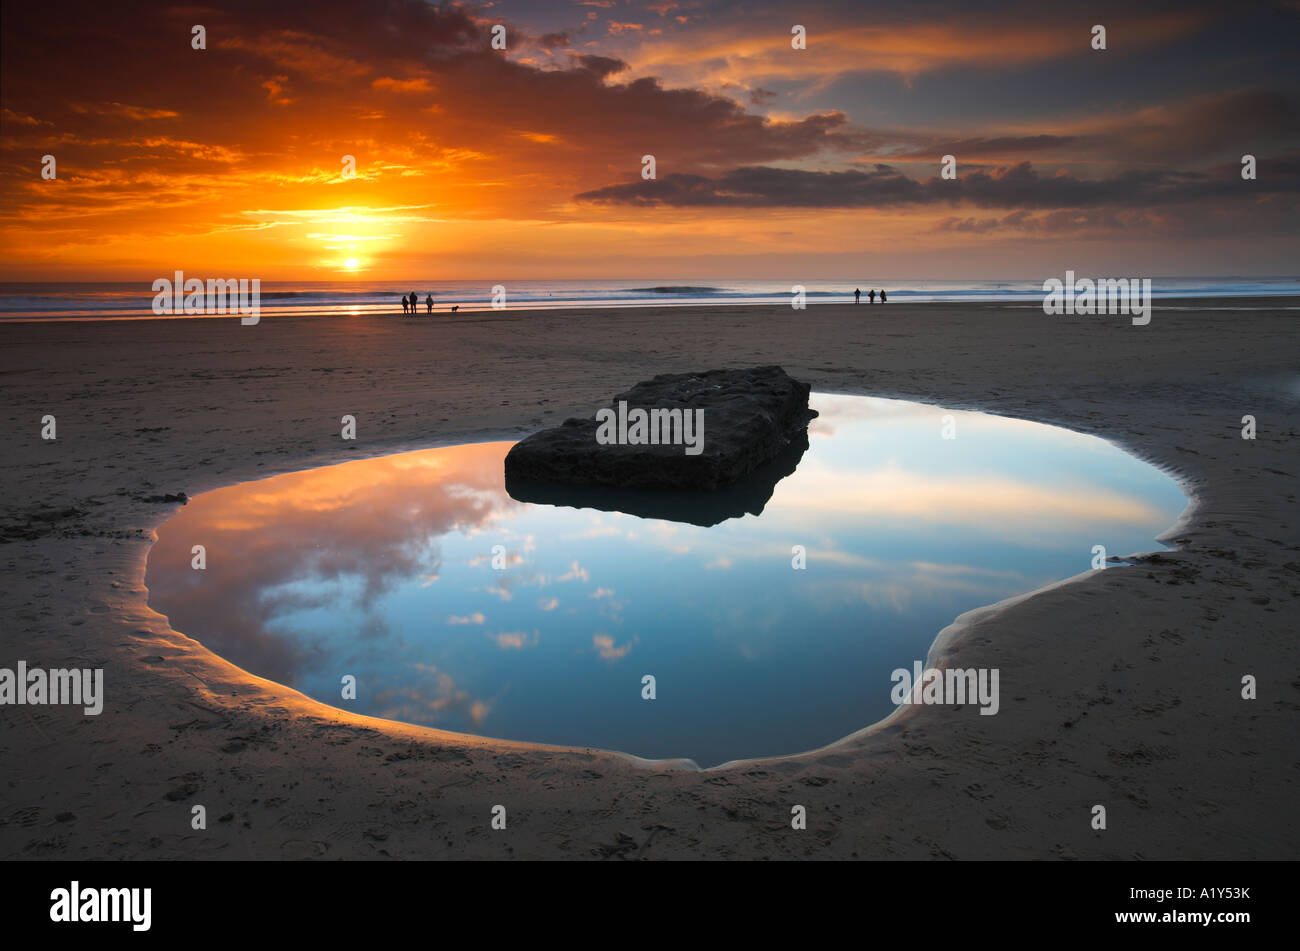 Dunraven Bay rockpool and people at sunset, Southerndown, Wales - Stock Image